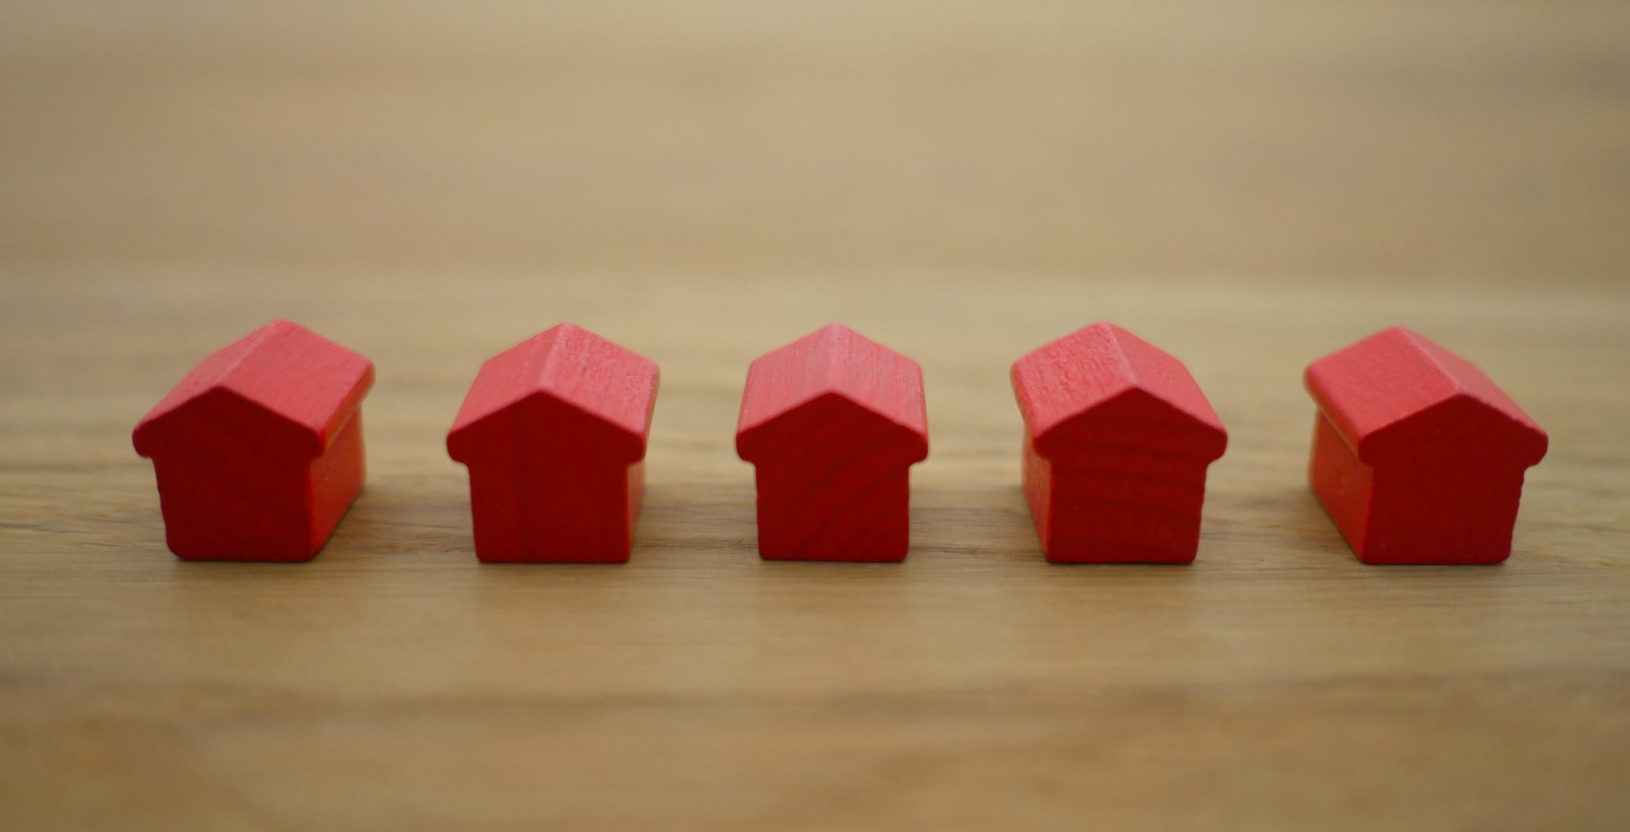 Five small red houses on a wooden table